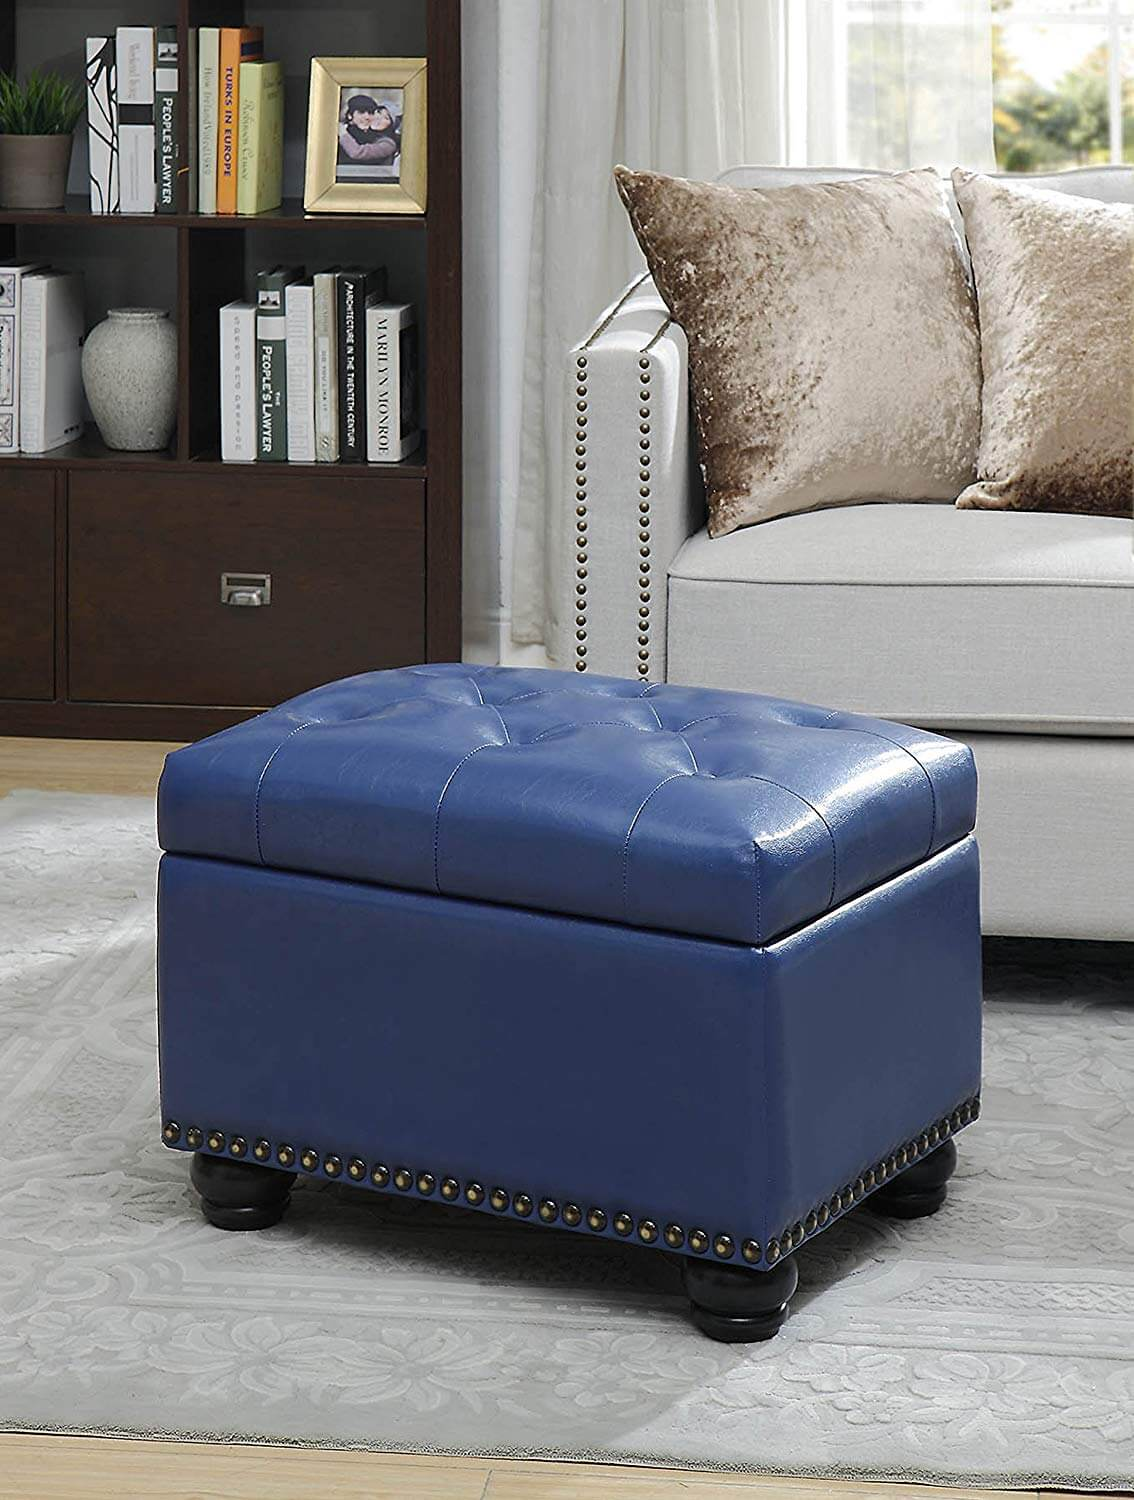 Storage Ottoman for Style and Functionality